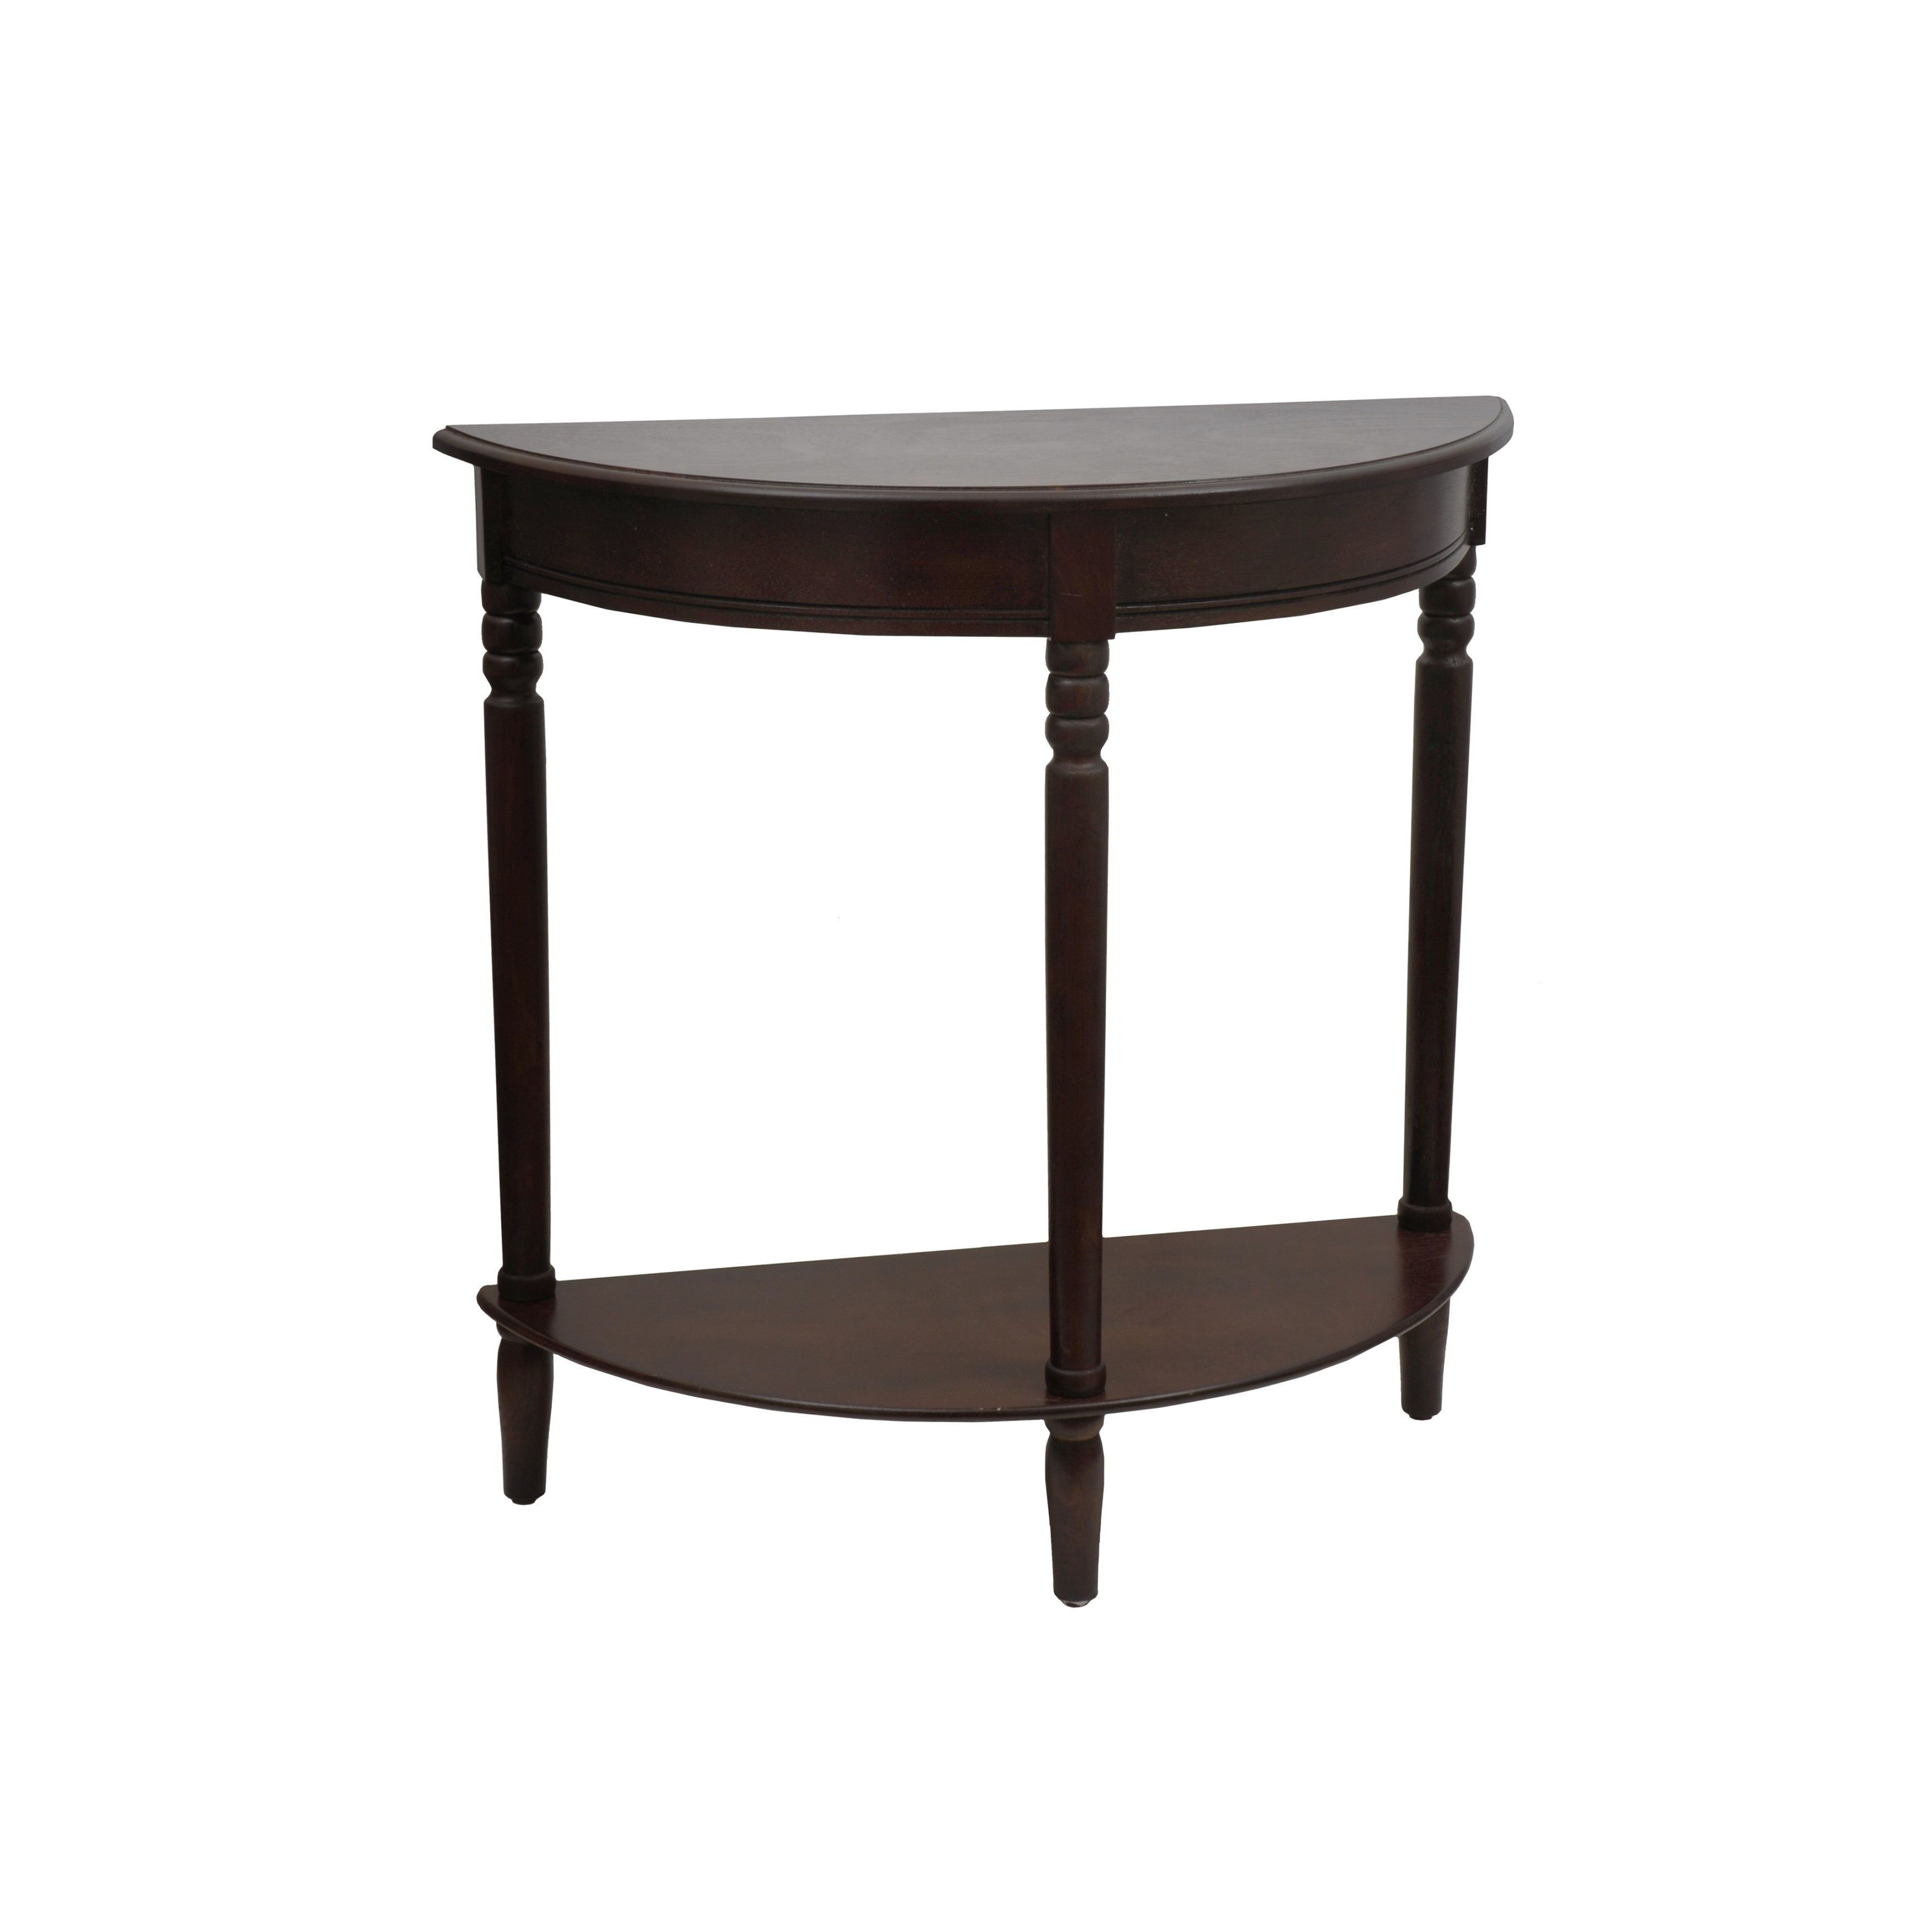 the classically designed half round console table multi accent functional ture greeting guests entryway adding life and style bronze drum coffee patio end clearance storage glass